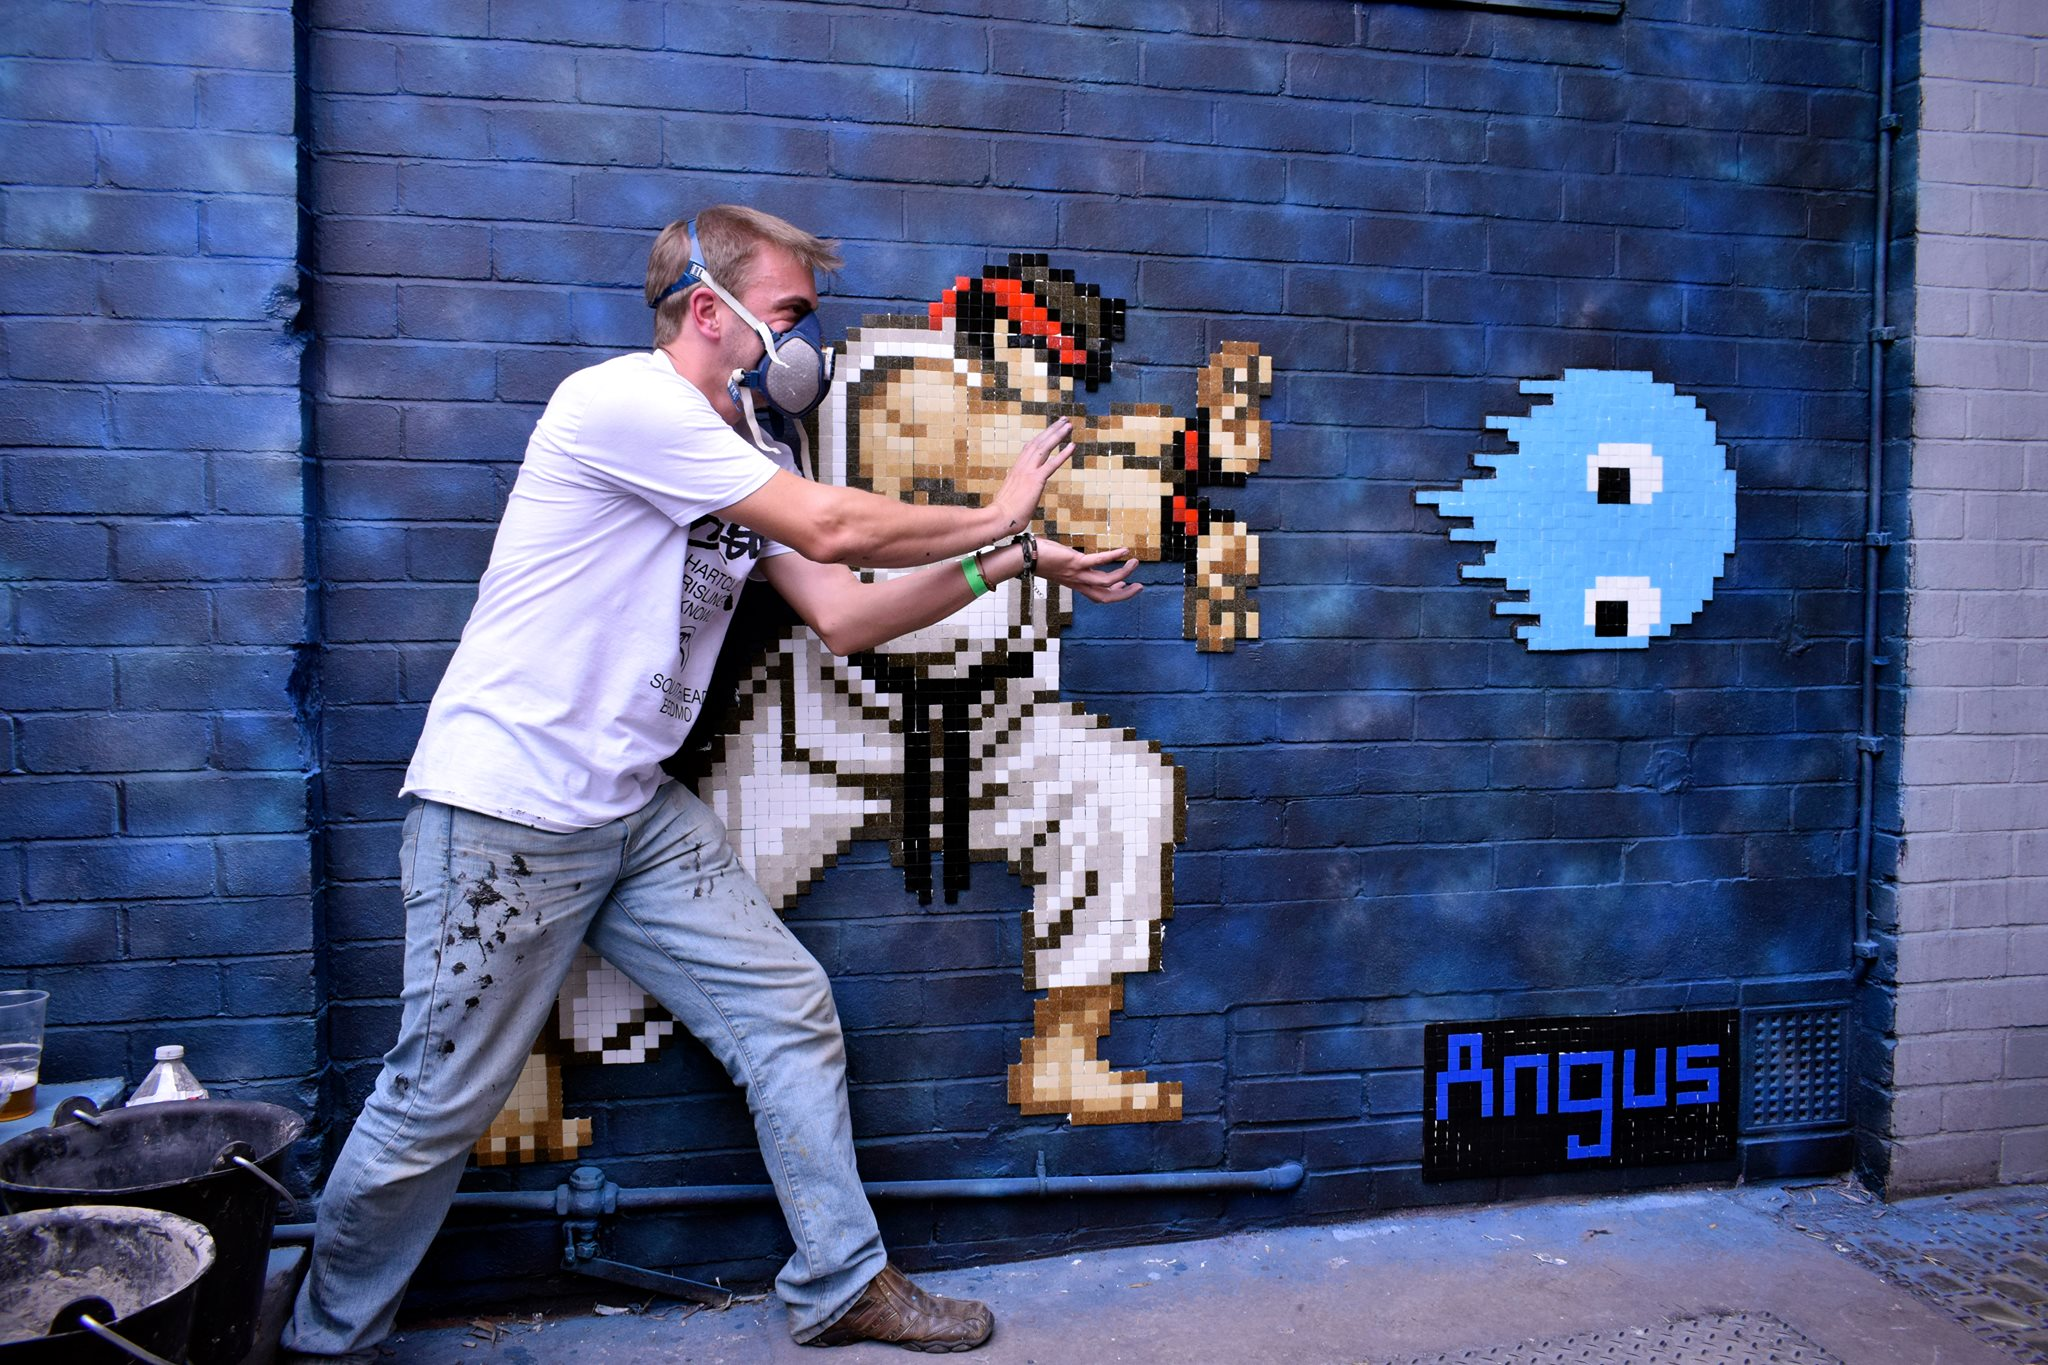 Bristol's own cheeky chappy Angus - on his year and Upfest